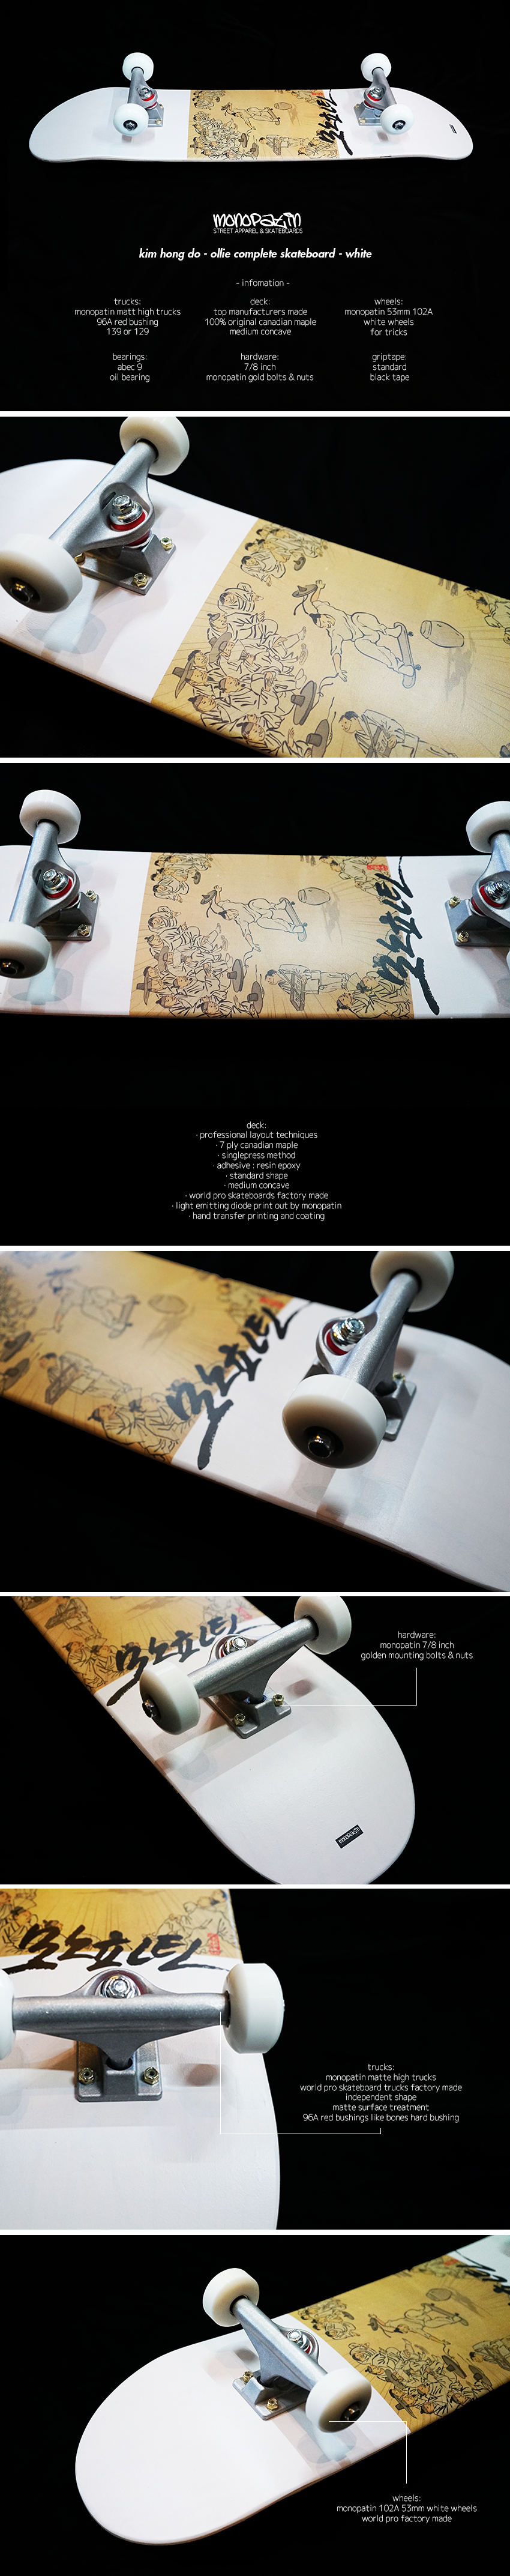 monopatin-kim-hong-do-ollie-complete-skateboard- (8).png